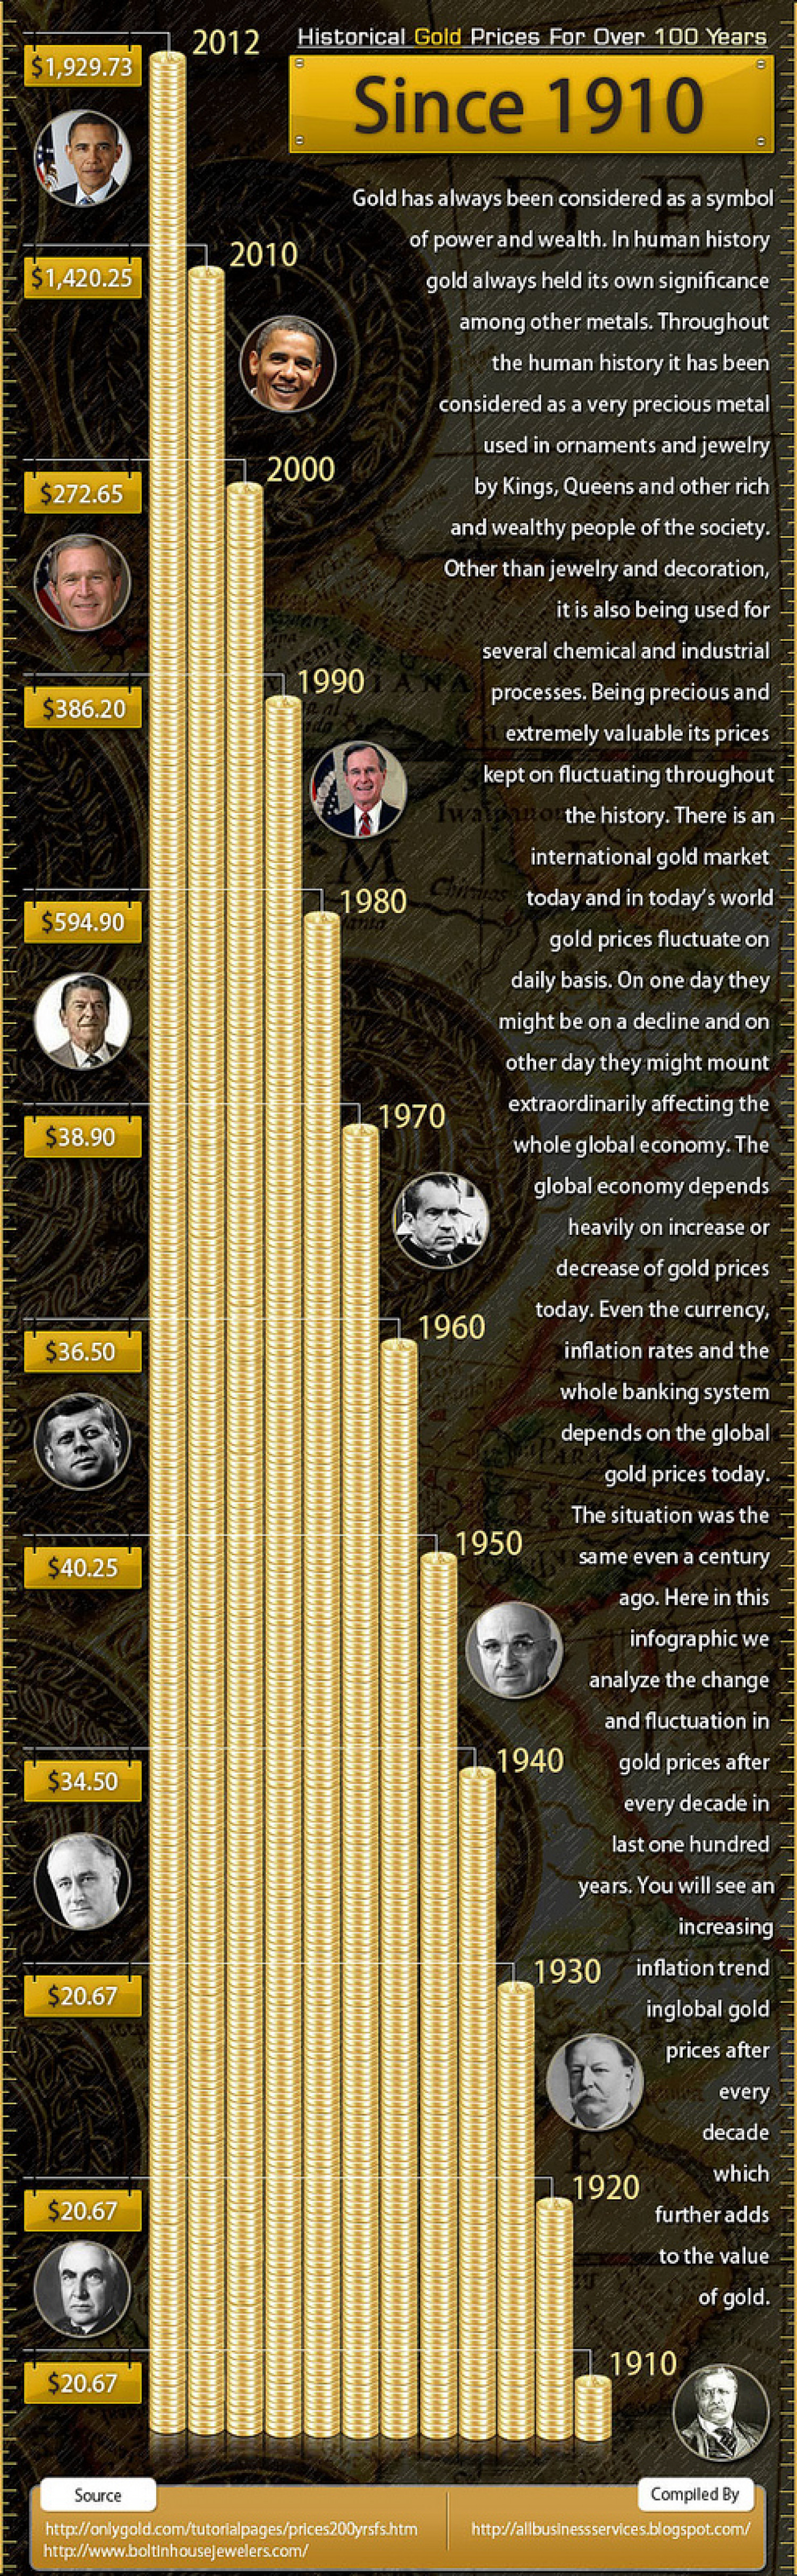 Historical Gold Prices For Over 100 Years Since 1910 Infographic